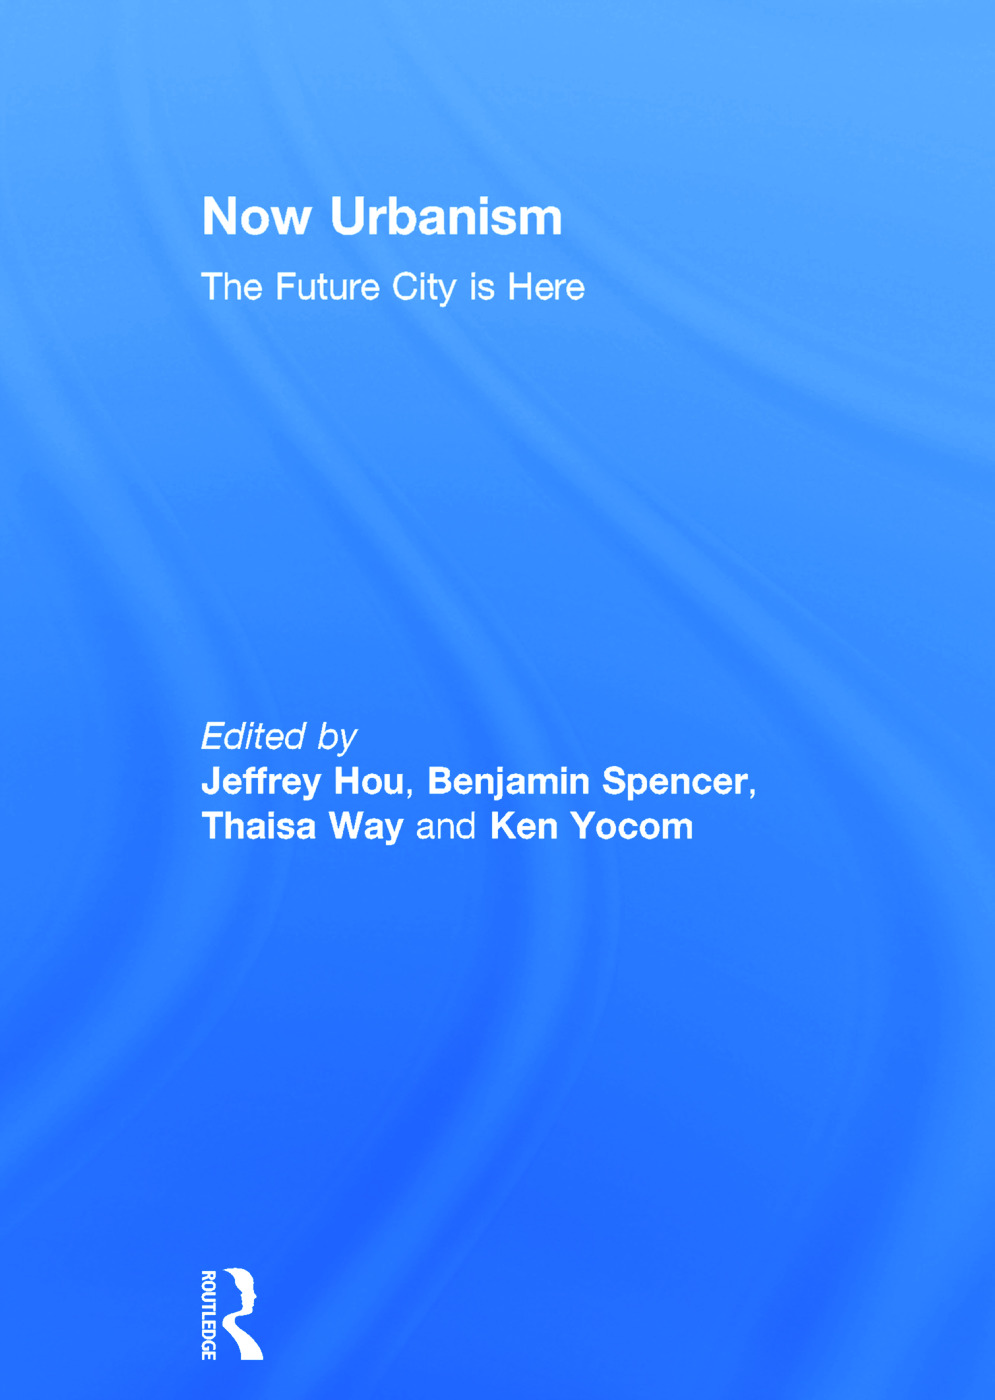 Now Urbanism: The Future City is Here book cover